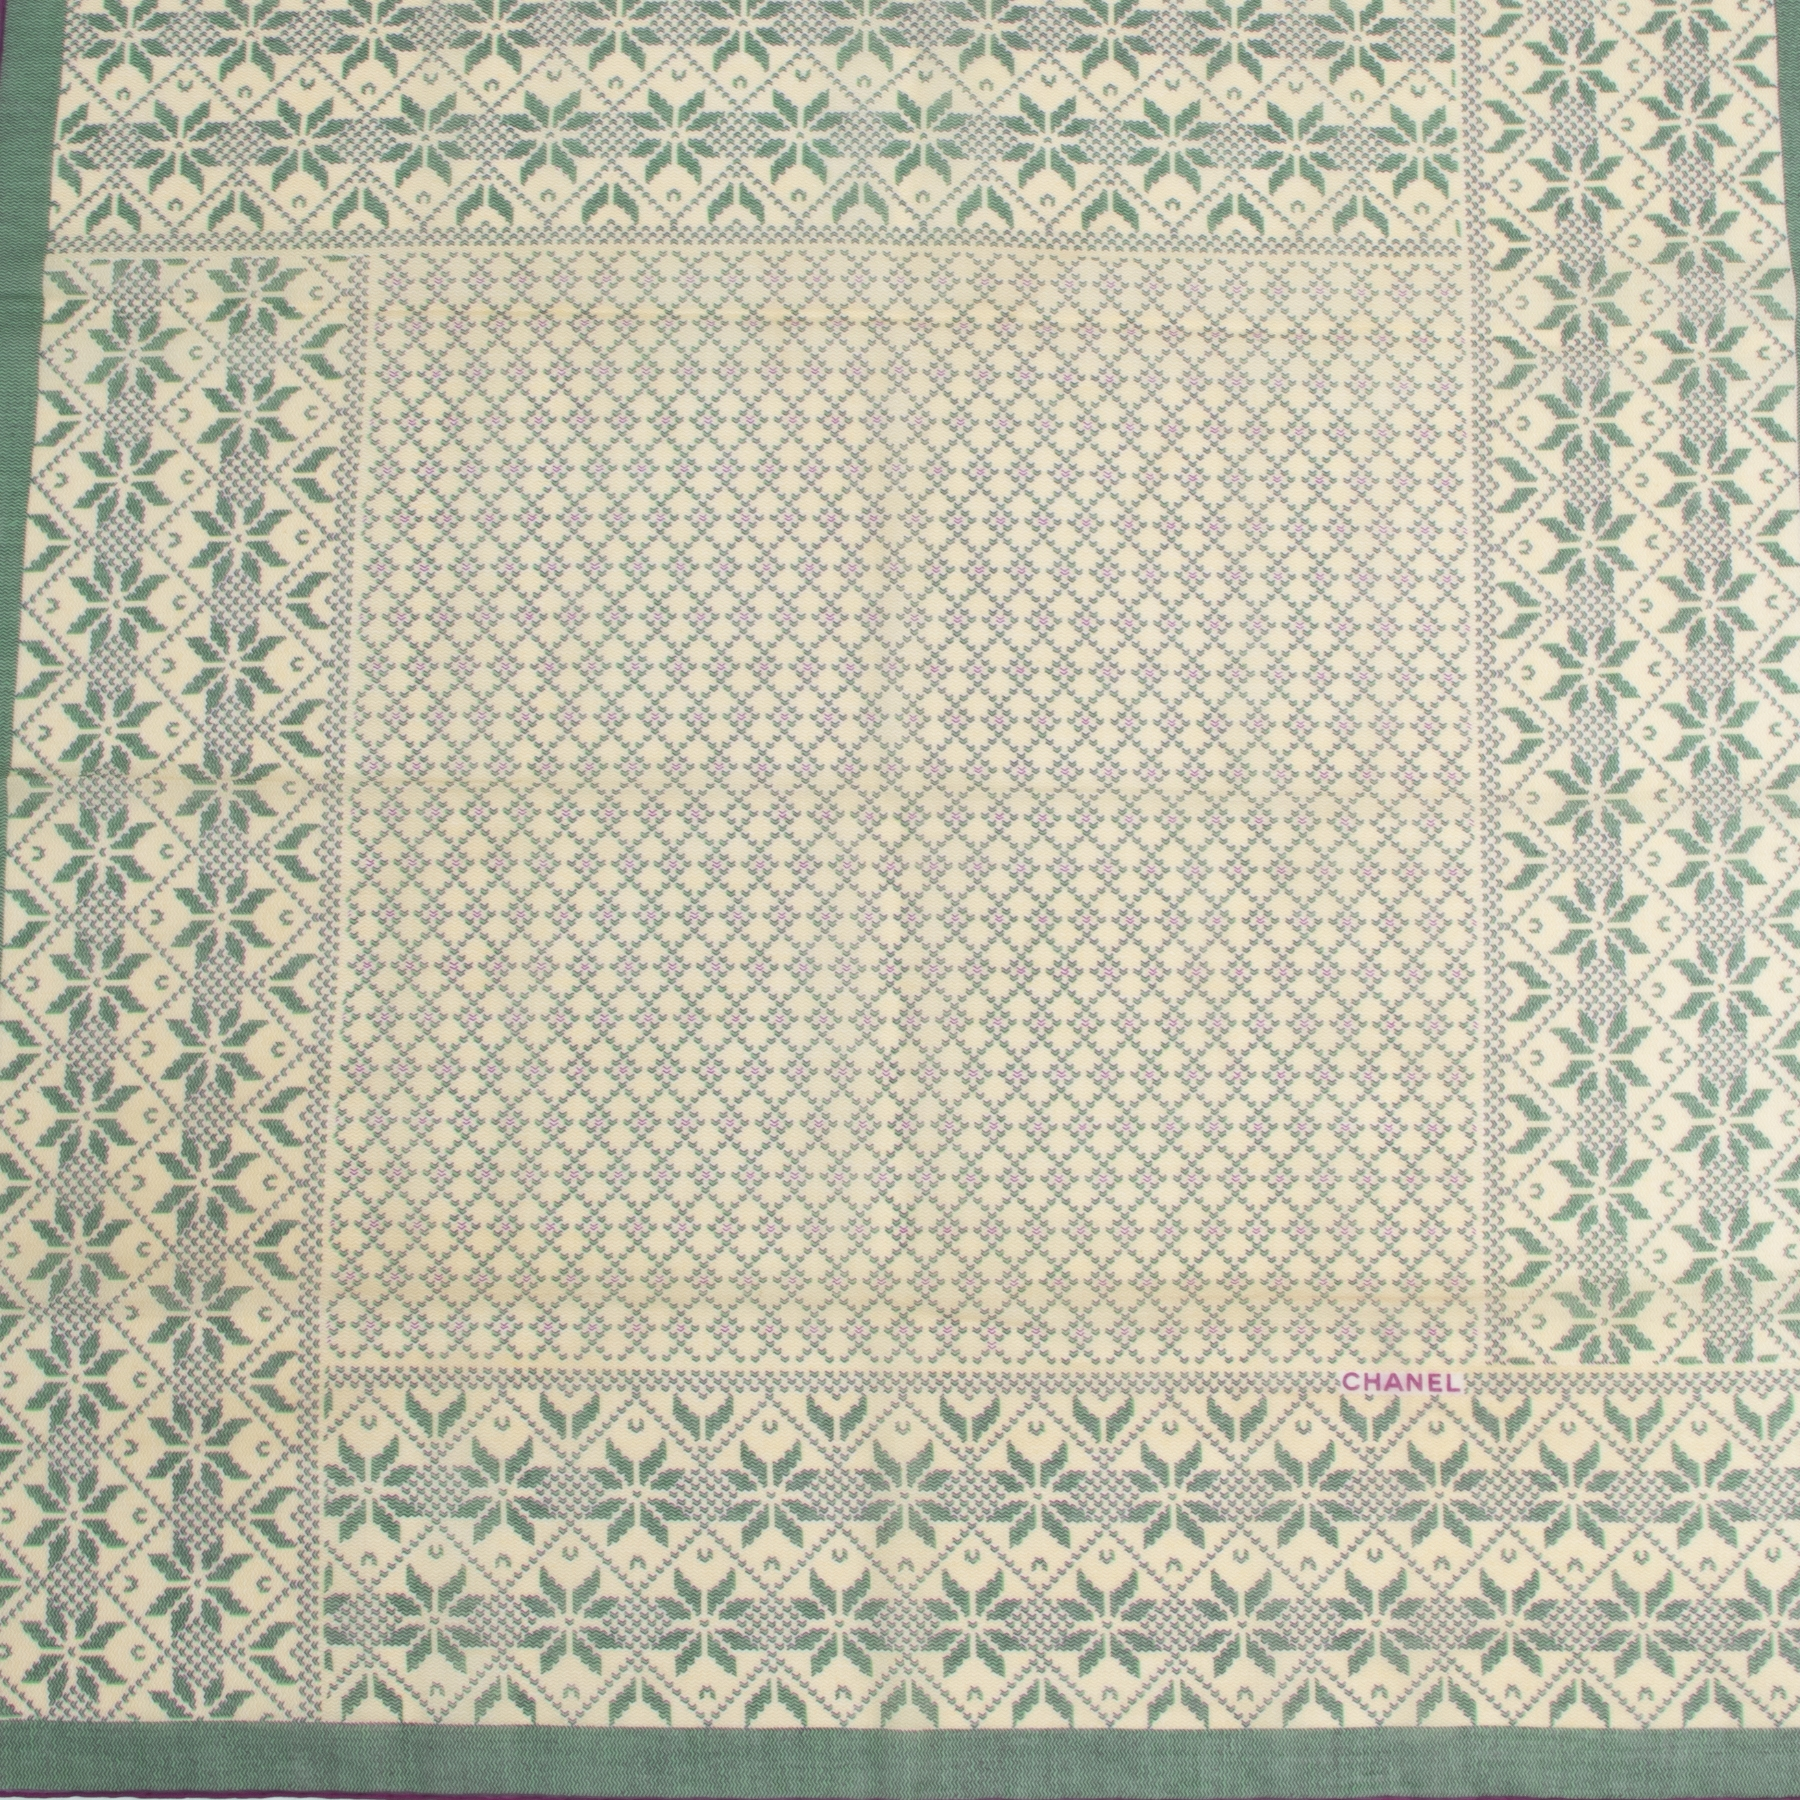 Authentic secondhand Chanel Green Cotton Scarf designer scarves accessories fashion luxury vintage webshop safe secure online shopping